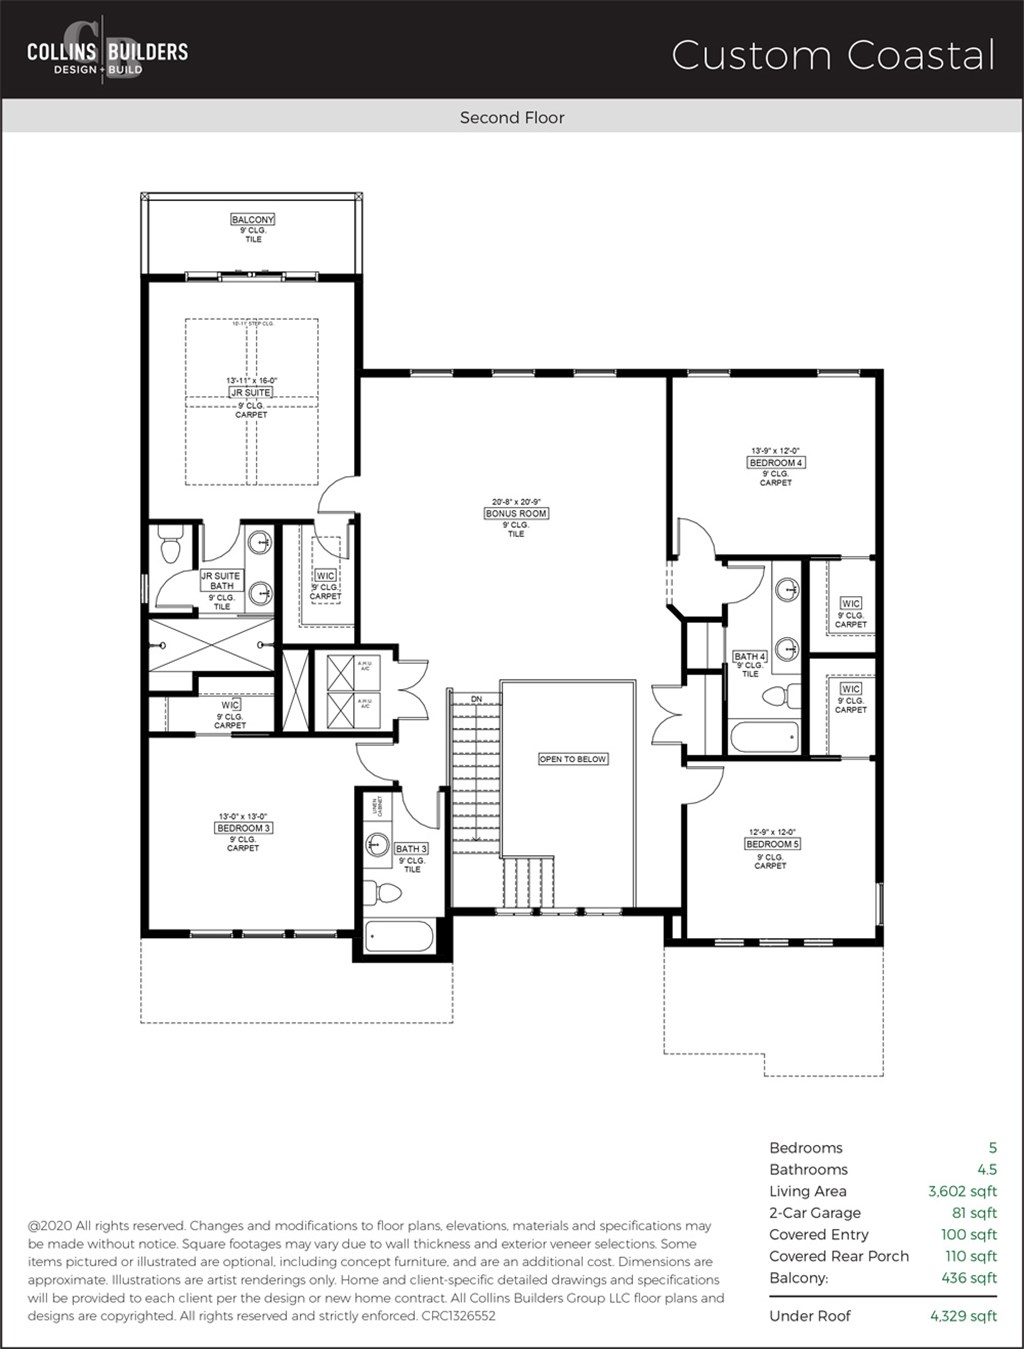 Floor Plan The Cove At Isle Of Palms Custom Coastal Second Floor